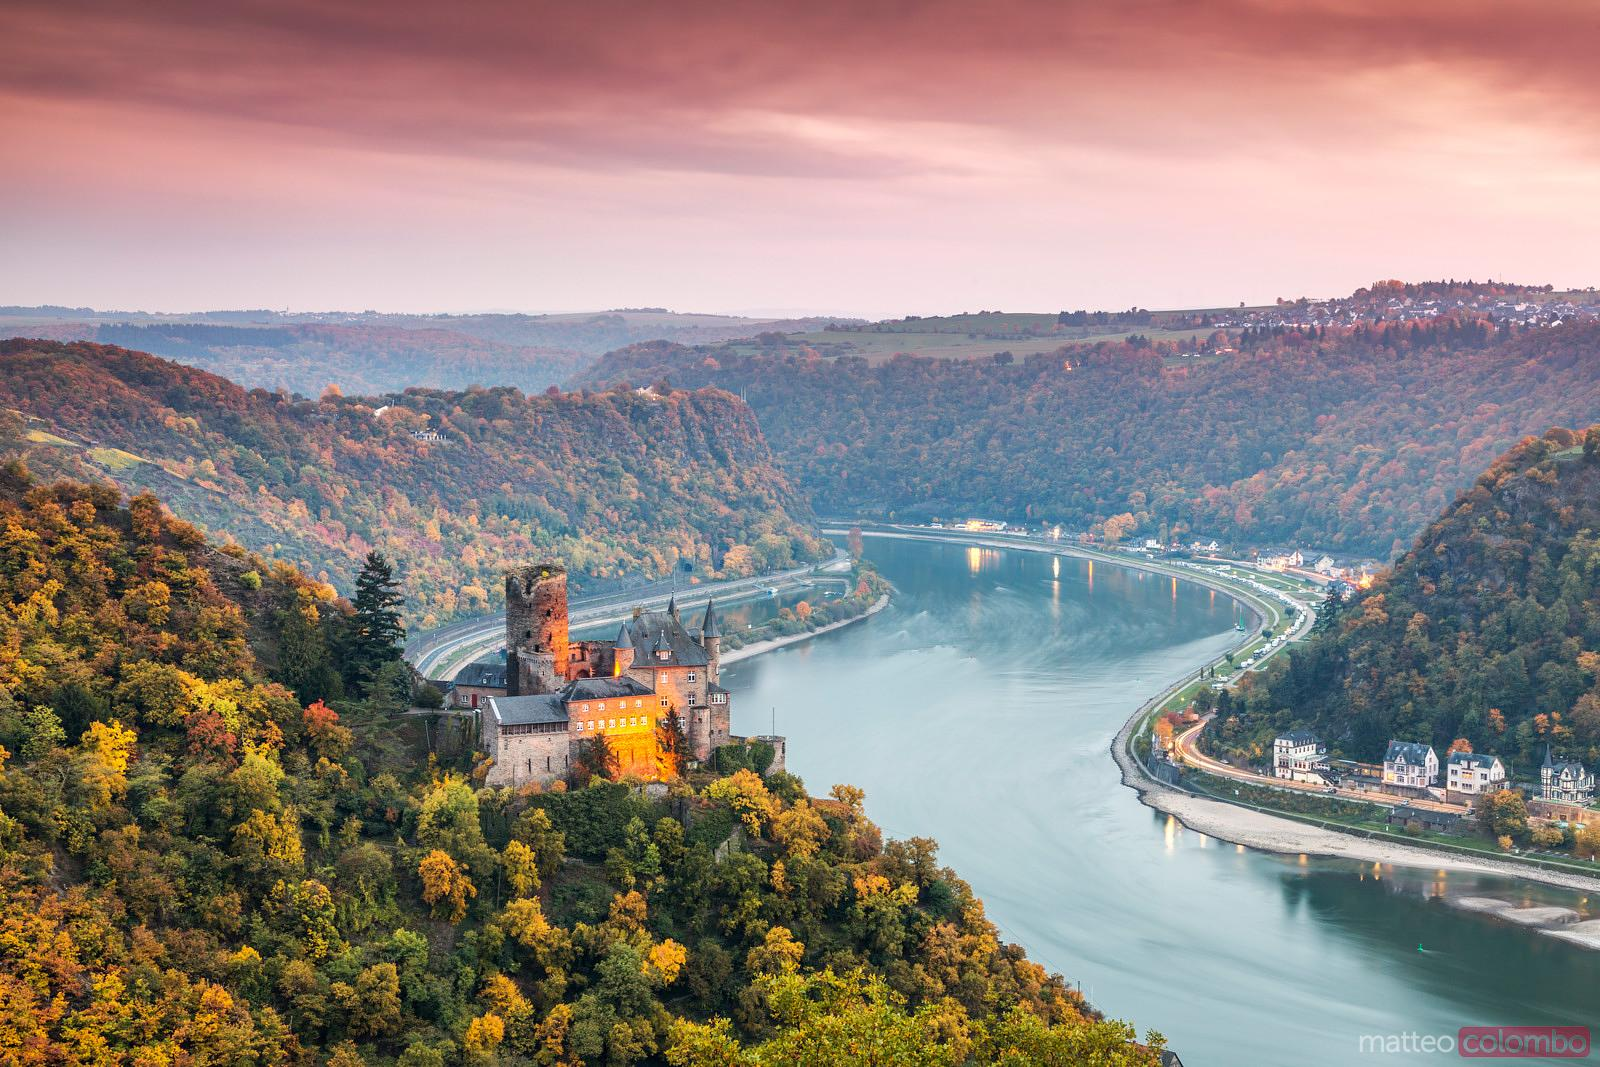 Burg Katz castle and romantic Rhine in autumn at sunset, Germany